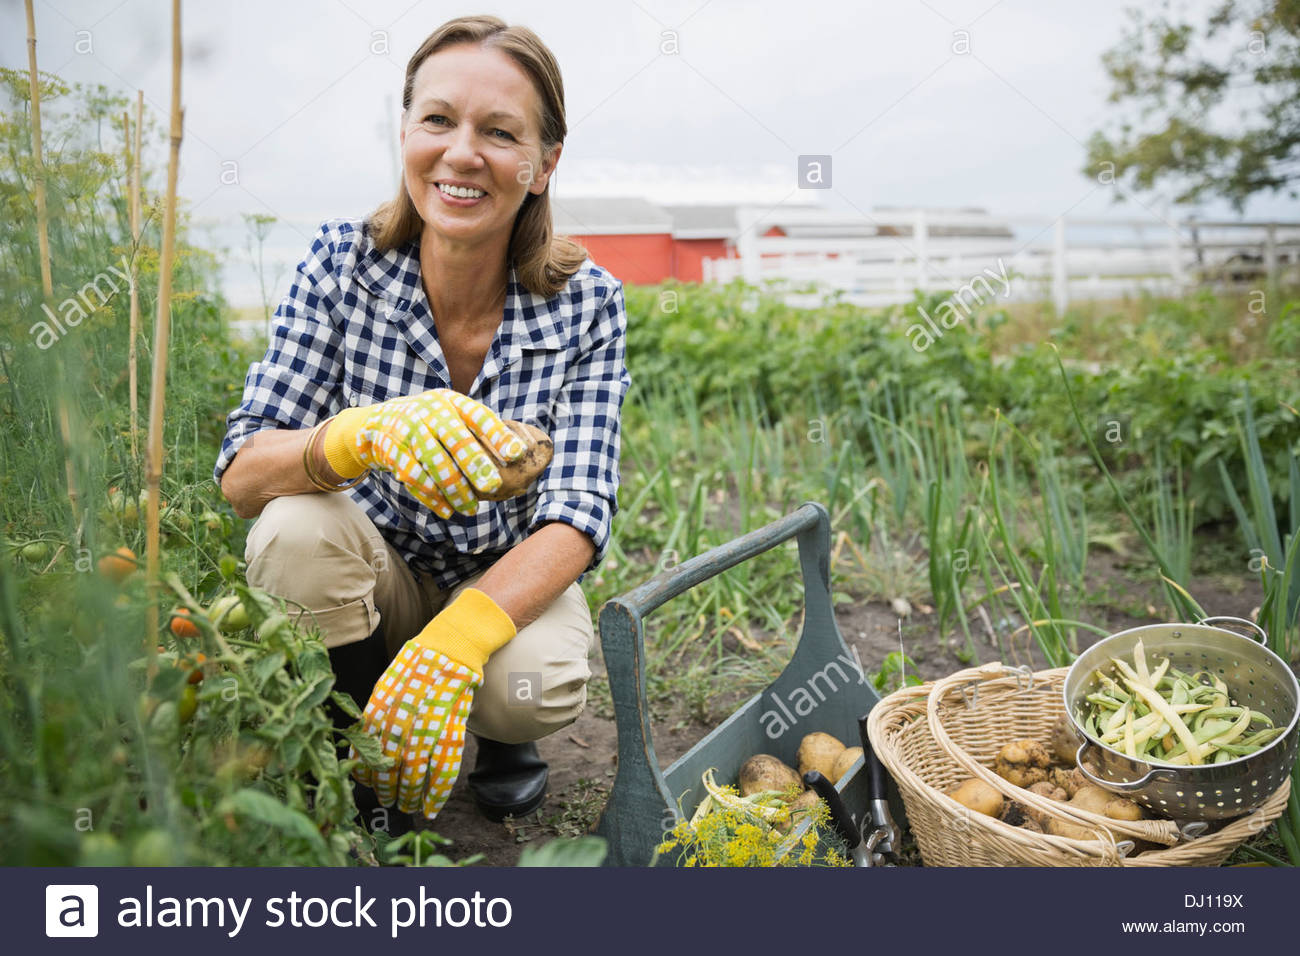 Portrait of senior woman harvesting vegetables - Stock Image